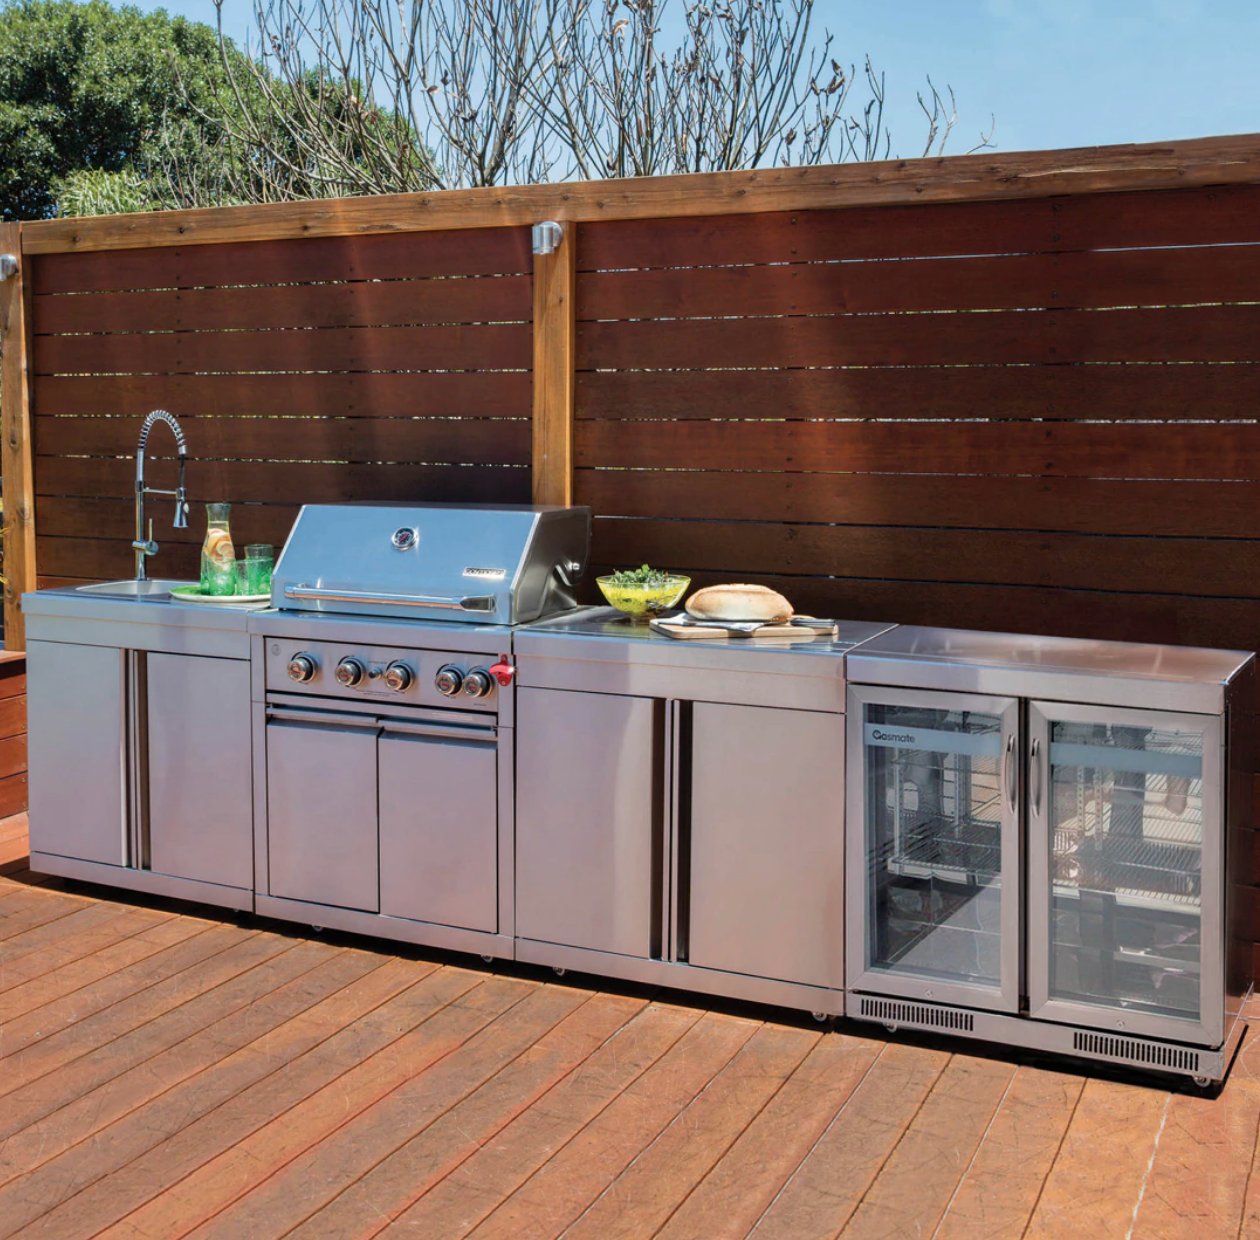 To Get Kitchen Free Sample And Design From Vermonhouzz Modular Outdoor Kitchens Kitchen Bar Design Outdoor Kitchen Sink